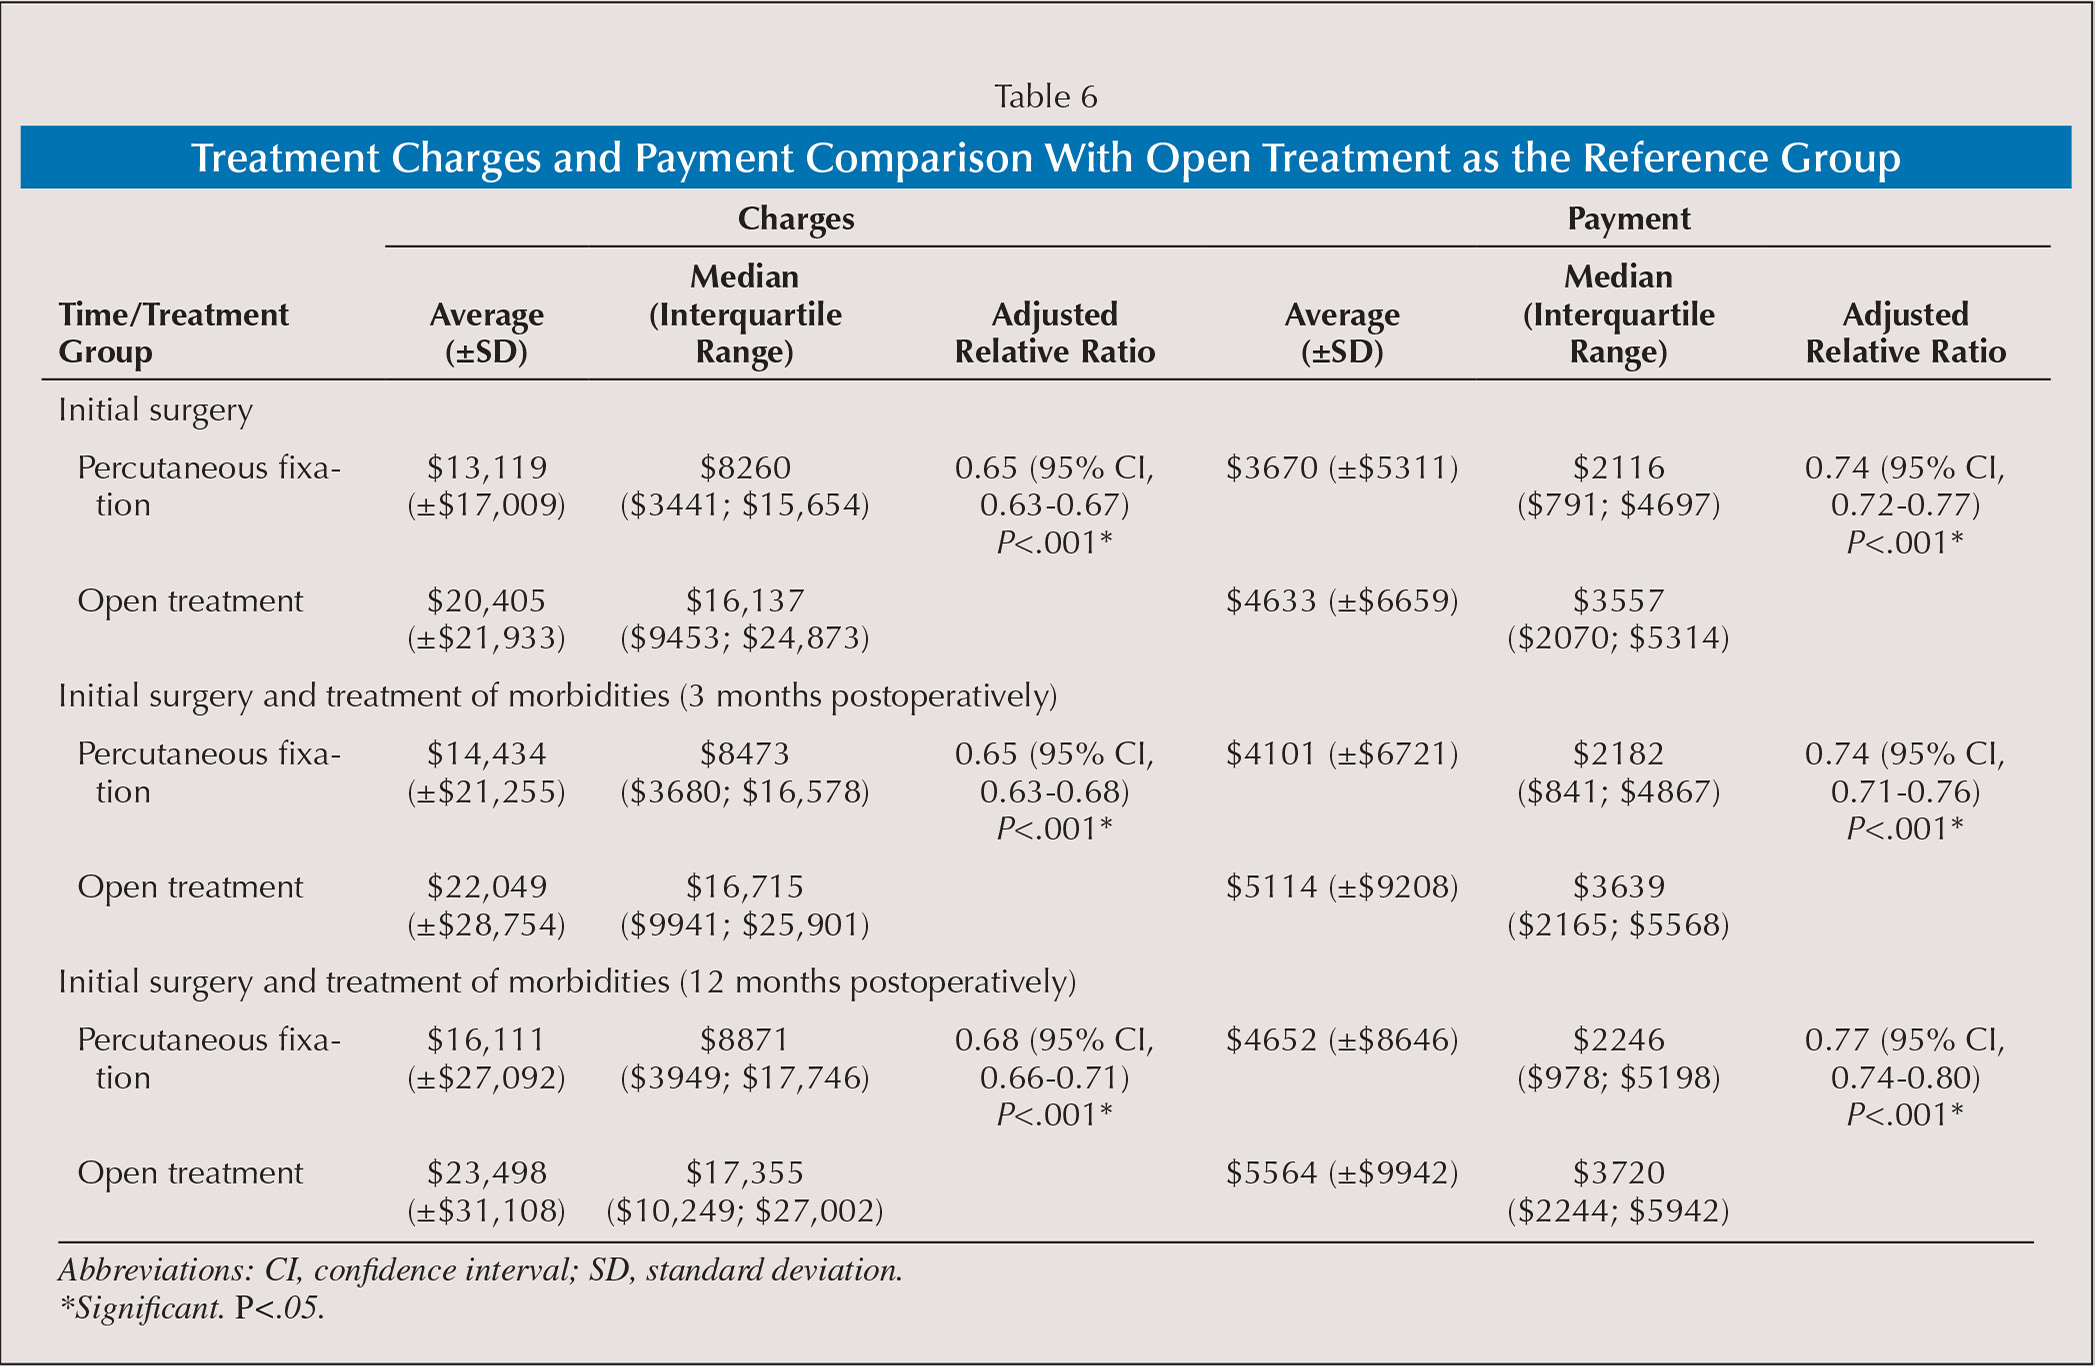 Treatment Charges and Payment Comparison With Open Treatment as the Reference Group